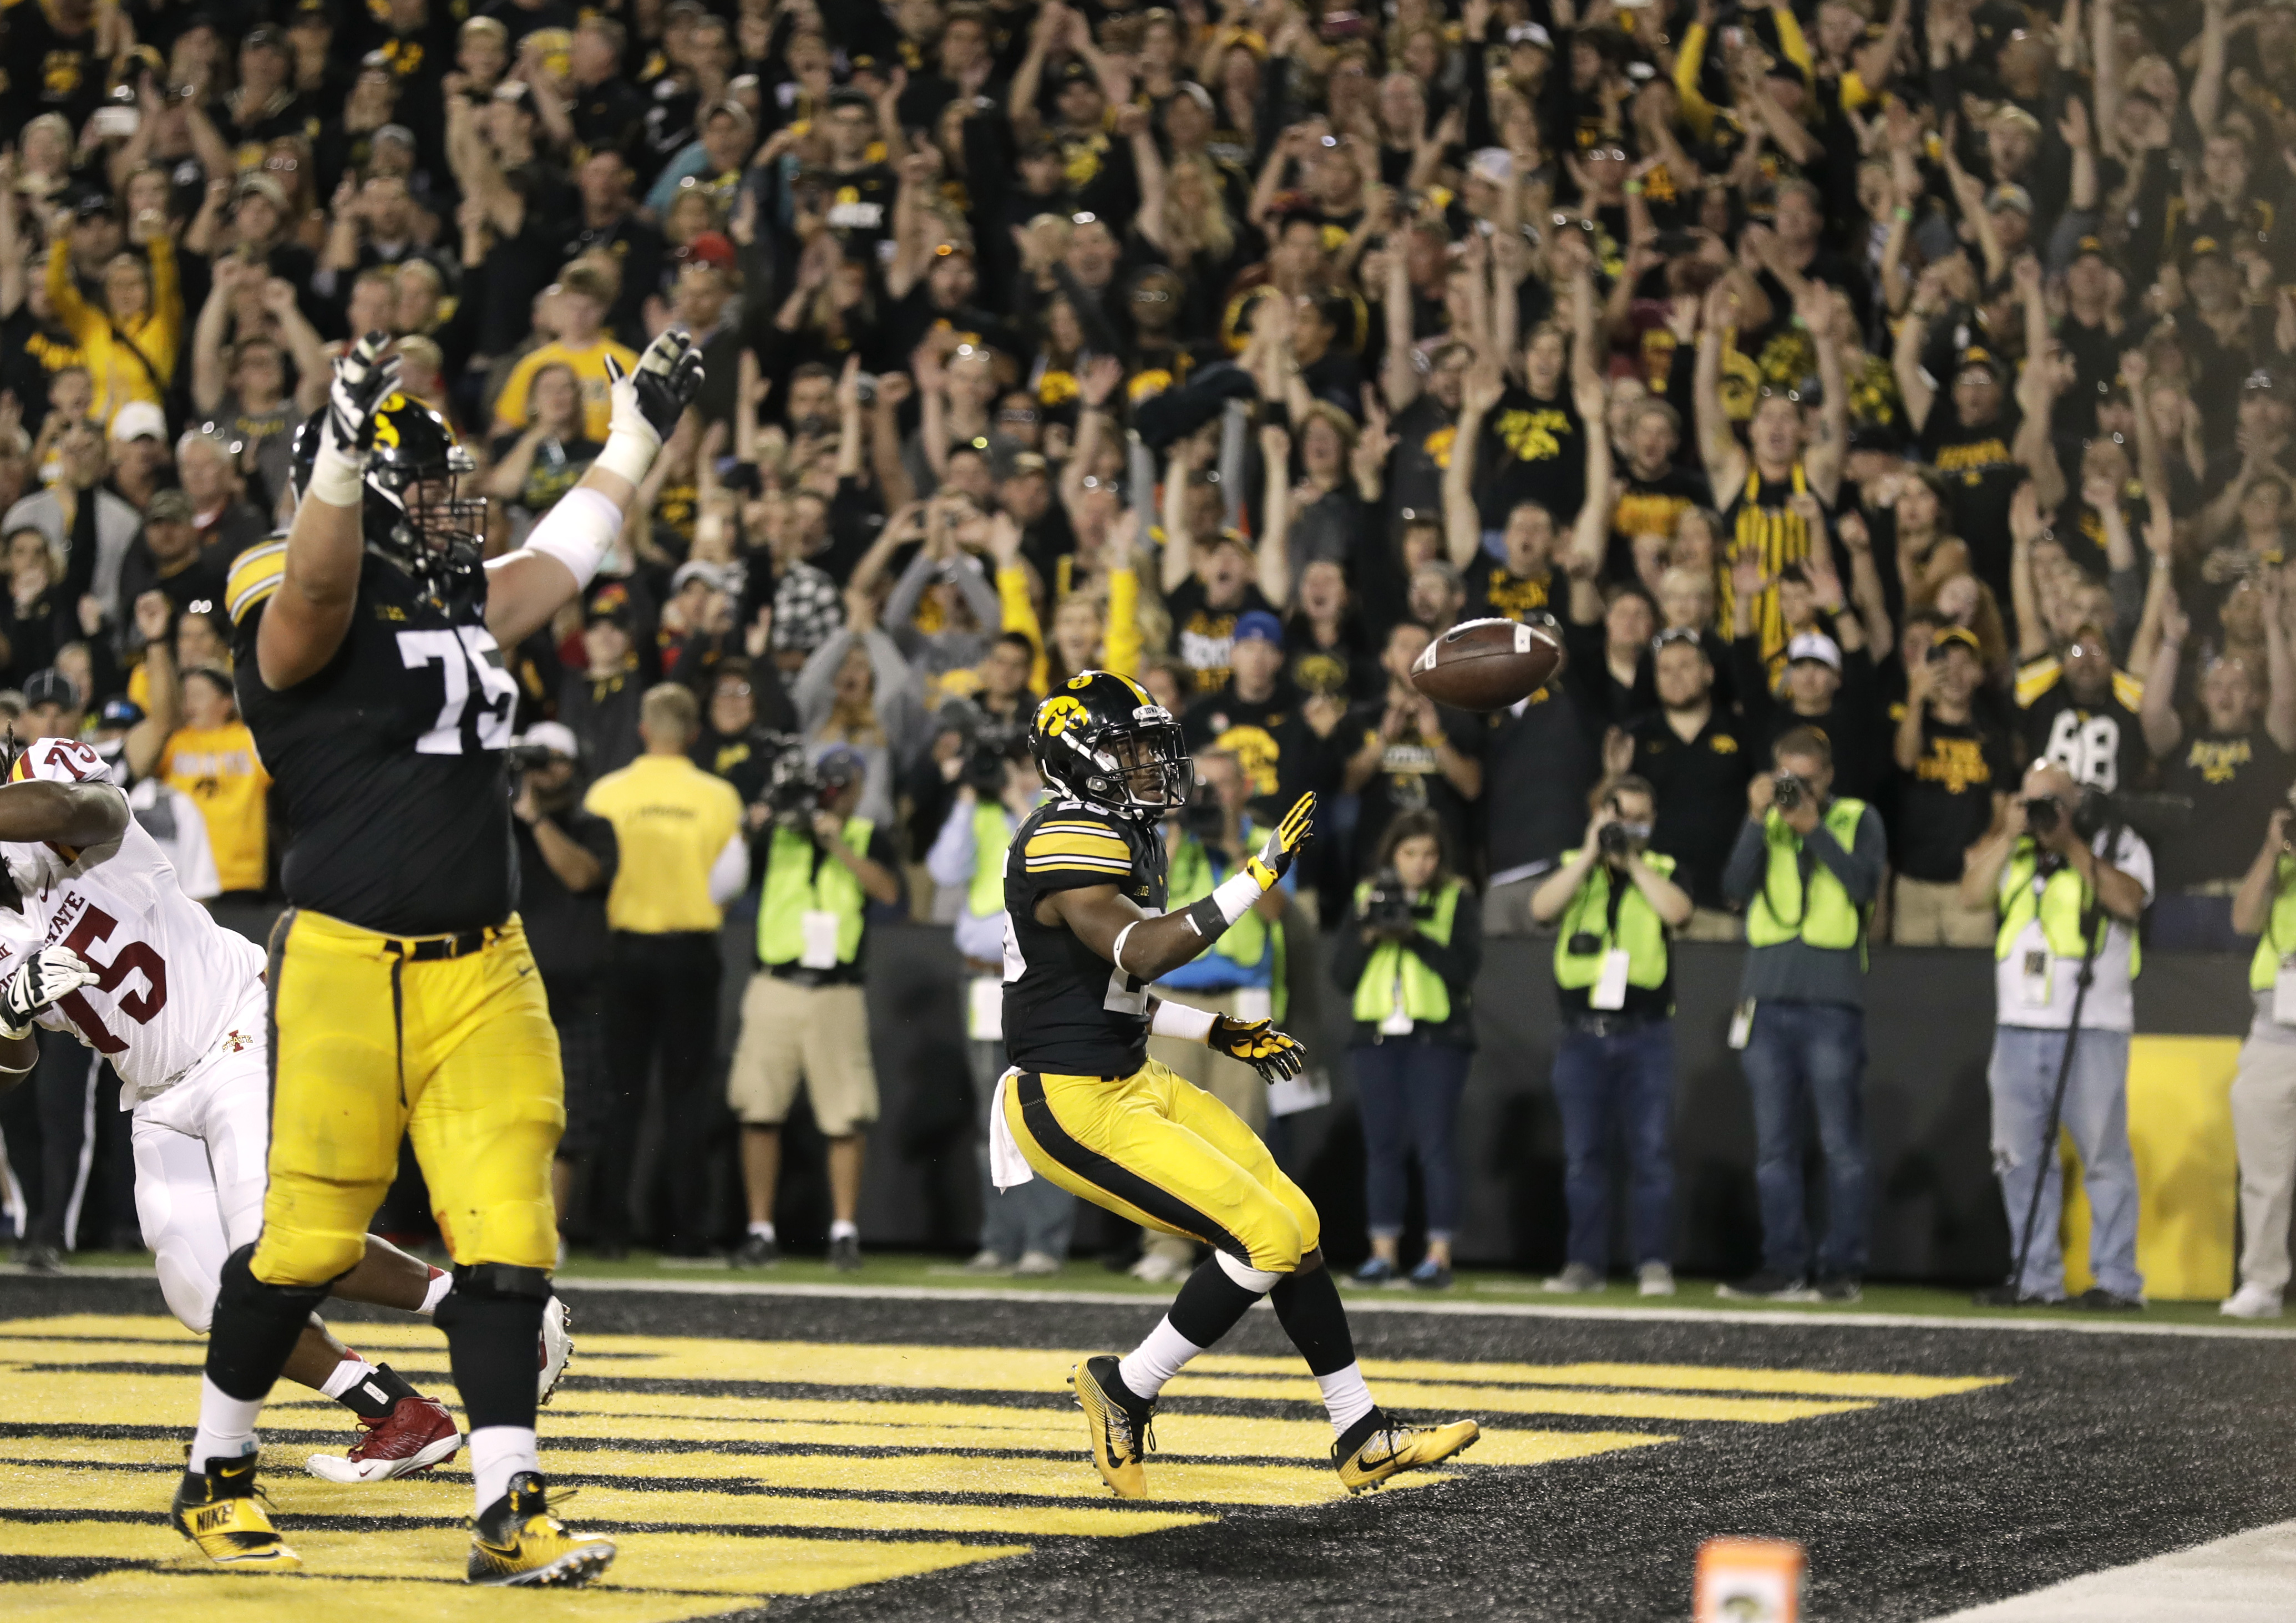 Iowa running back Akrum Wadley celebrates in the end zone with teammate Ike Boettger, left, after scoring on a 3-yard touchdown run during the second half of an NCAA college football game against Iowa State, Saturday, Sept. 10, 2016, in Iowa City, Iowa. I